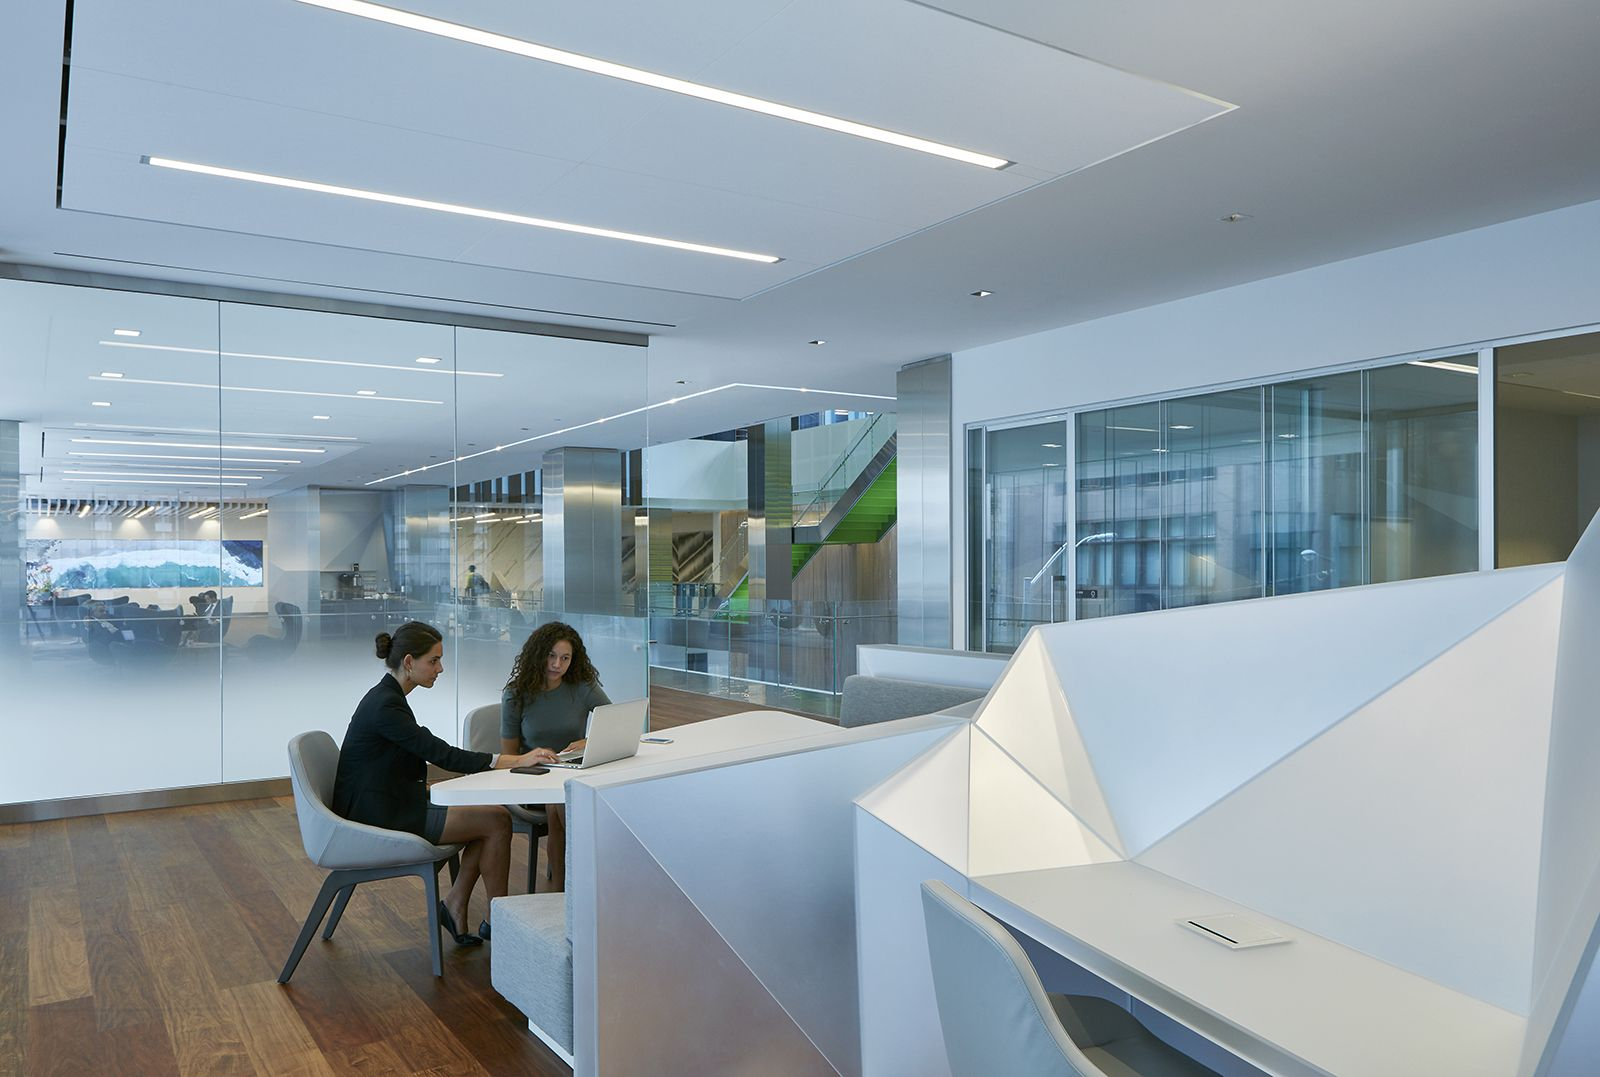 Design inspiration for the office of the future - Deloitte's Toronto Office is what a workplace should look like. Interior Designer: AFK - Collaborative Area, Office, Work